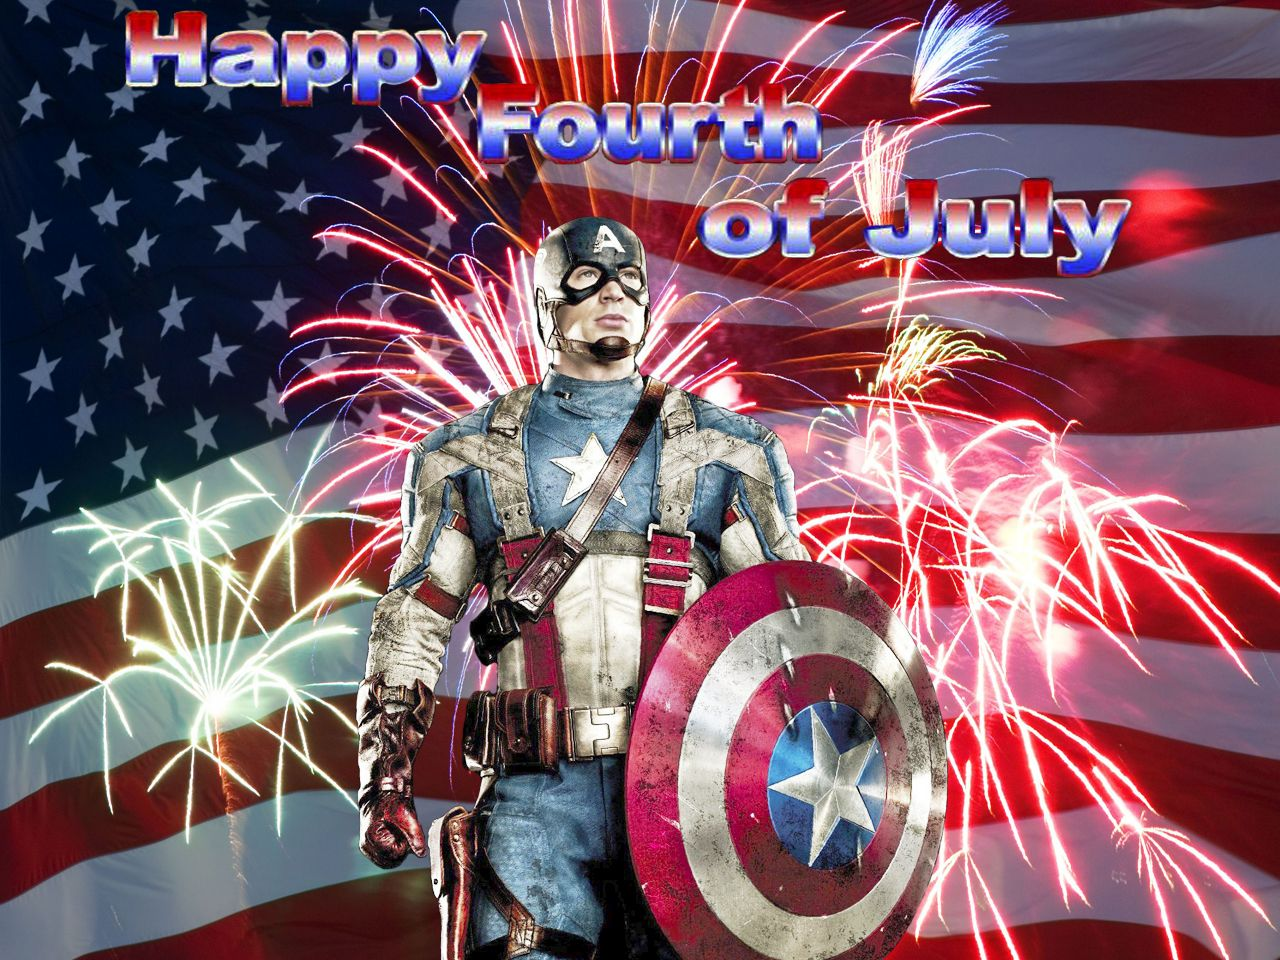 Captain america 4th of july by swfan1977iantart on happy of july greetings cards ecards clip art animated printable gifs images 2015 kristyandbryce Gallery